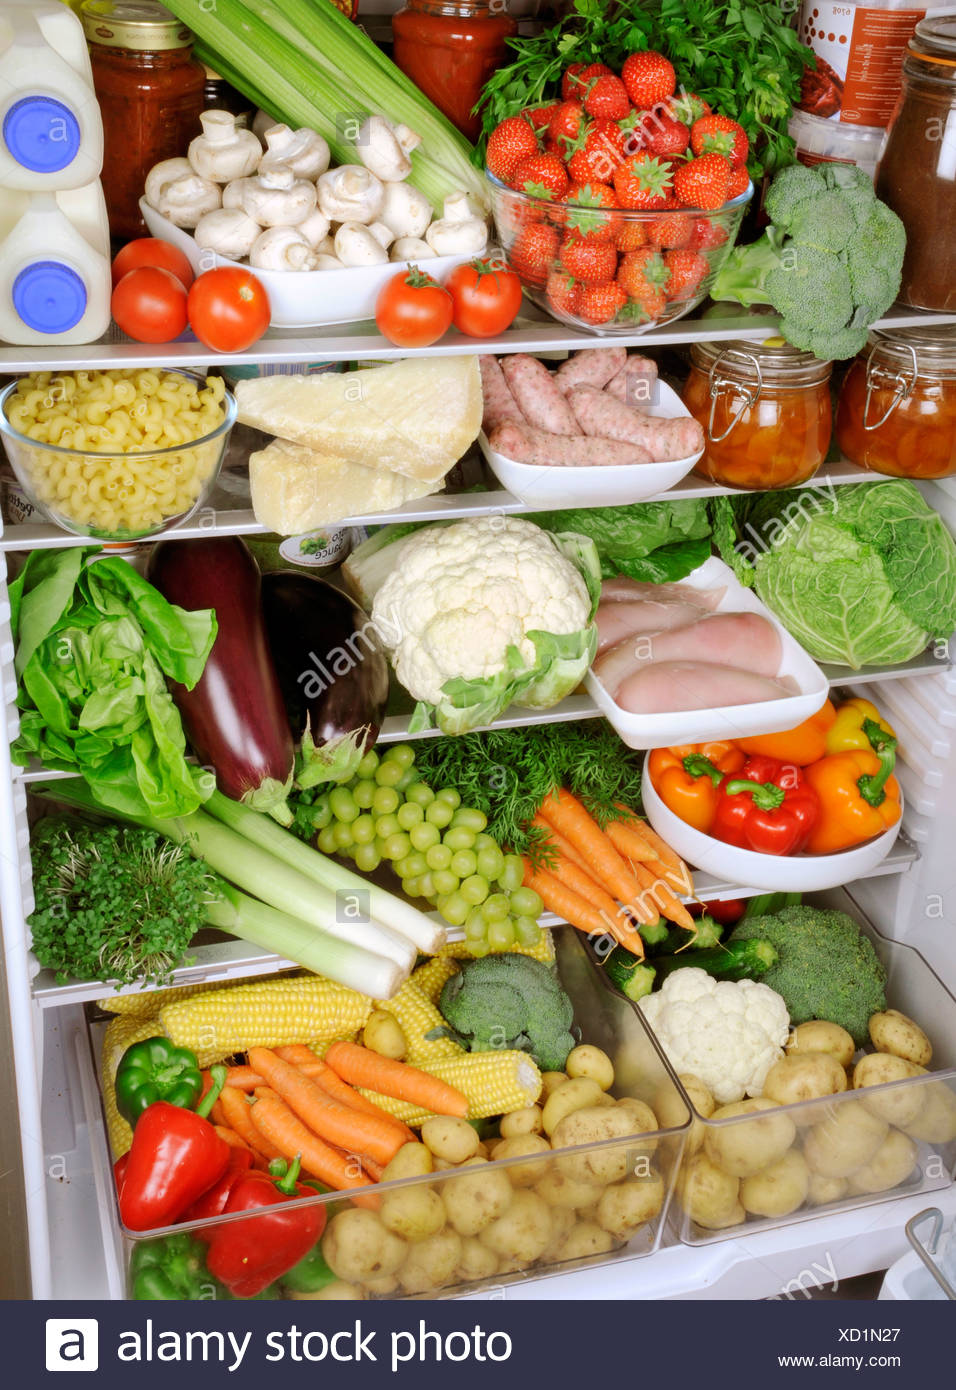 CONTENTS OF REFRIGERATOR - Stock Image